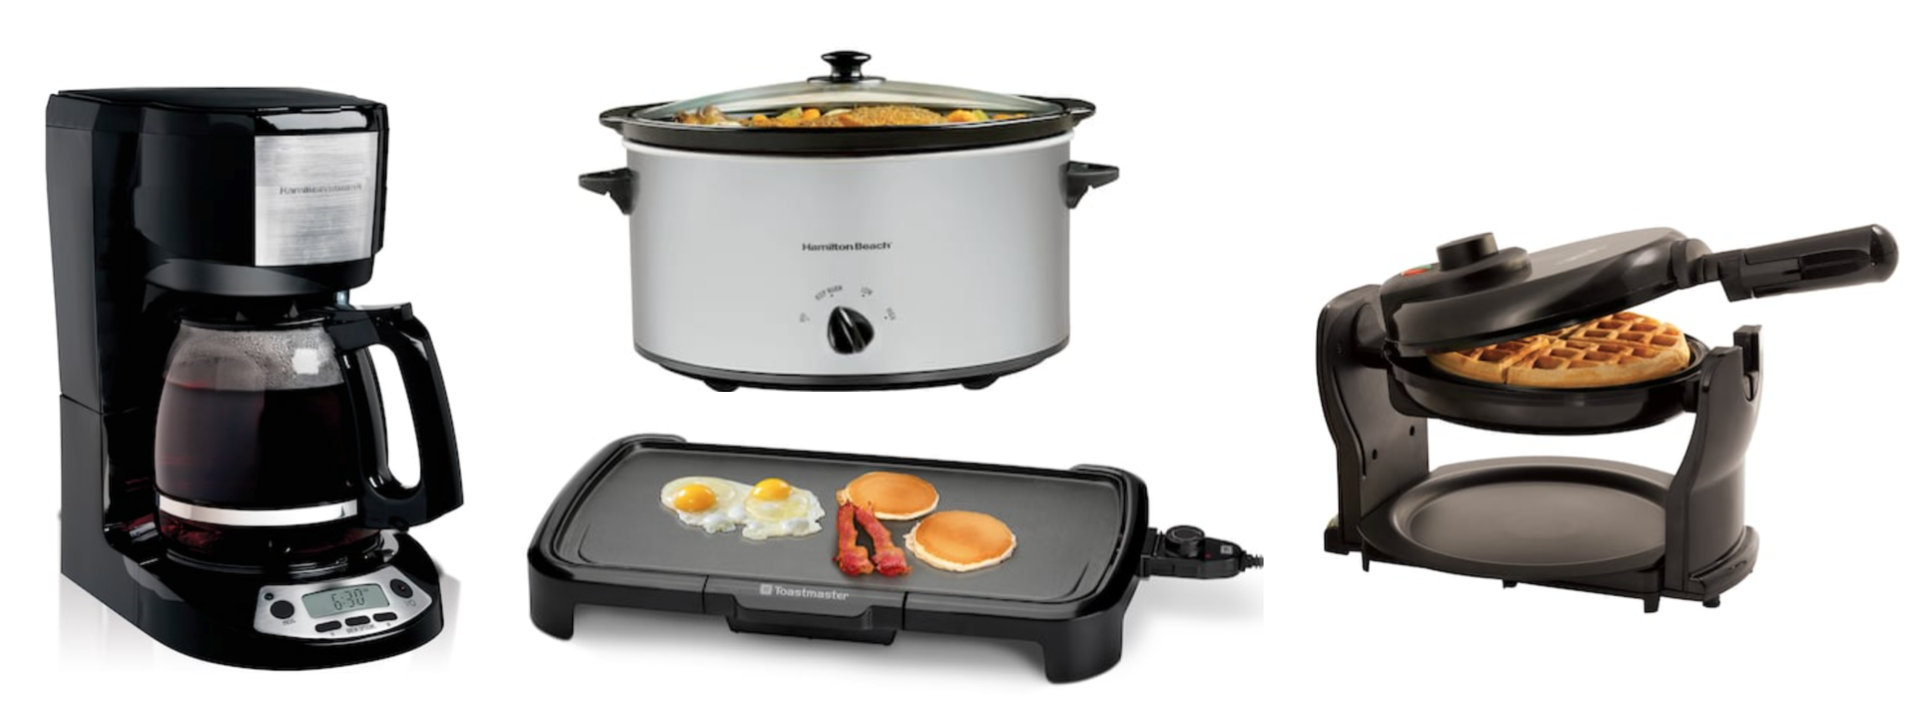 Kohls Three Small Kitchen Appliances